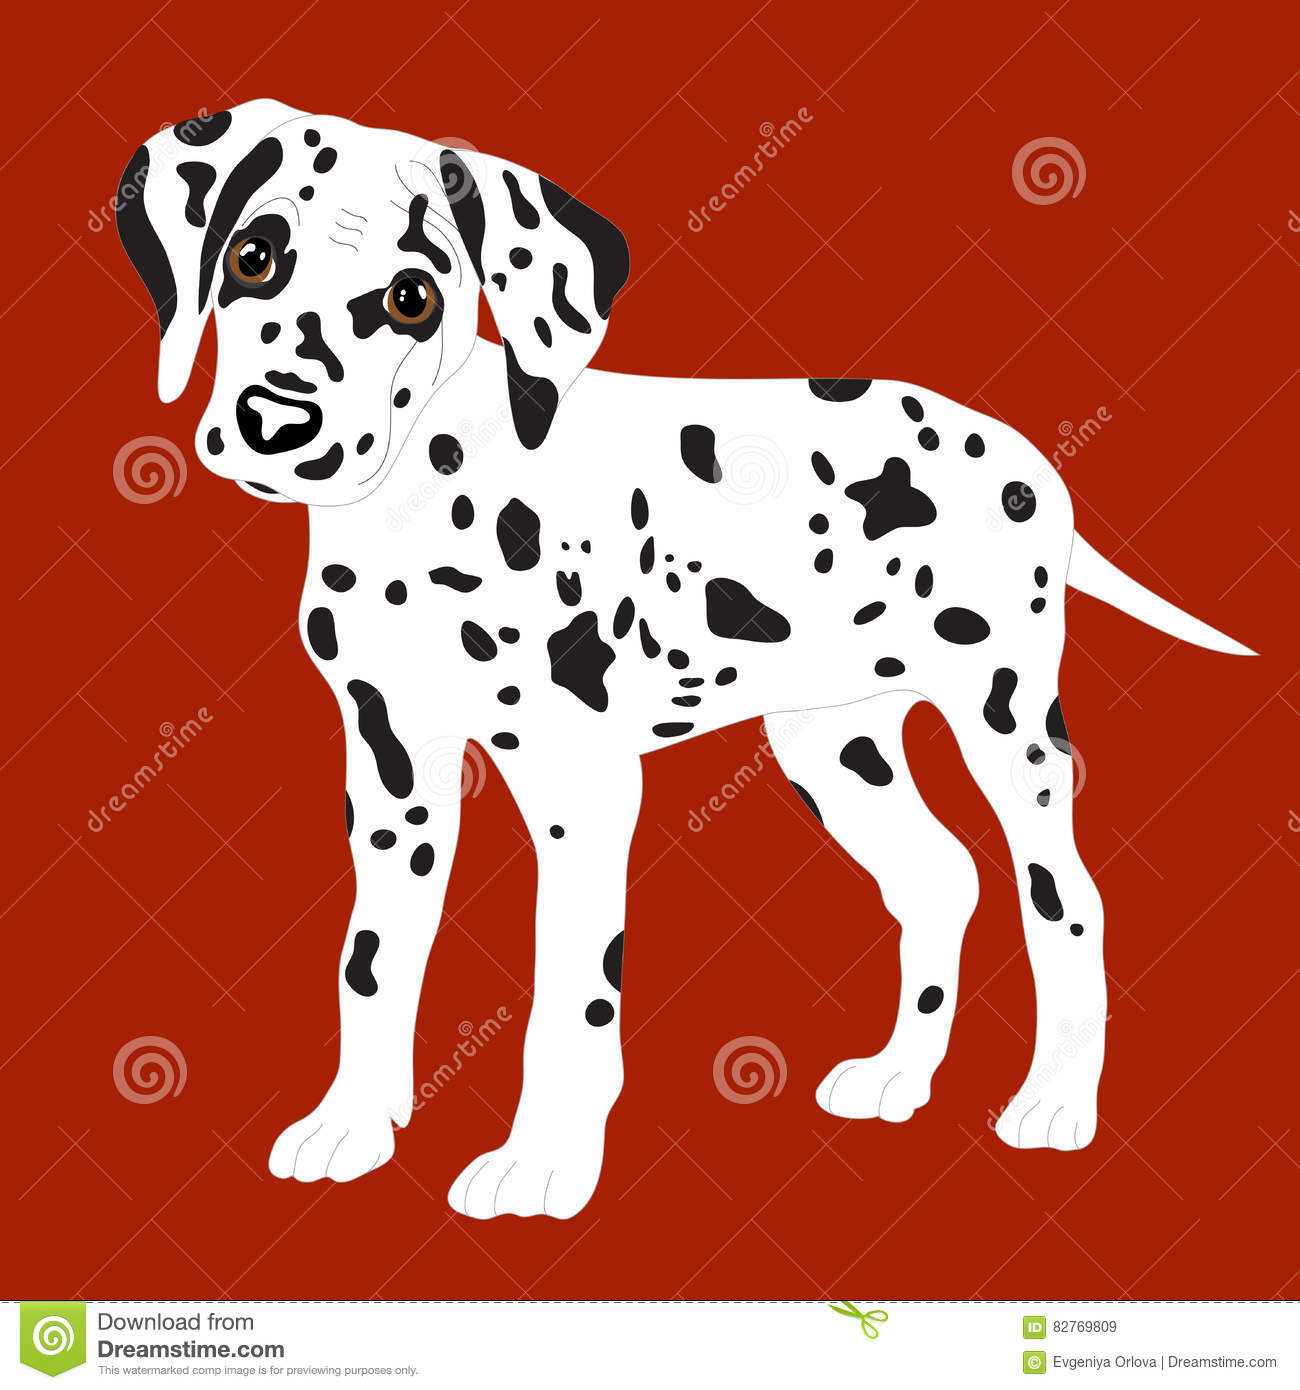 Dalmatians Cute Puppy Sad Vector Illustration Portrait Of Dalmatian Puppy Dog Isolated Stock Illustration Illustration Of Drawing Cheerful 82769809